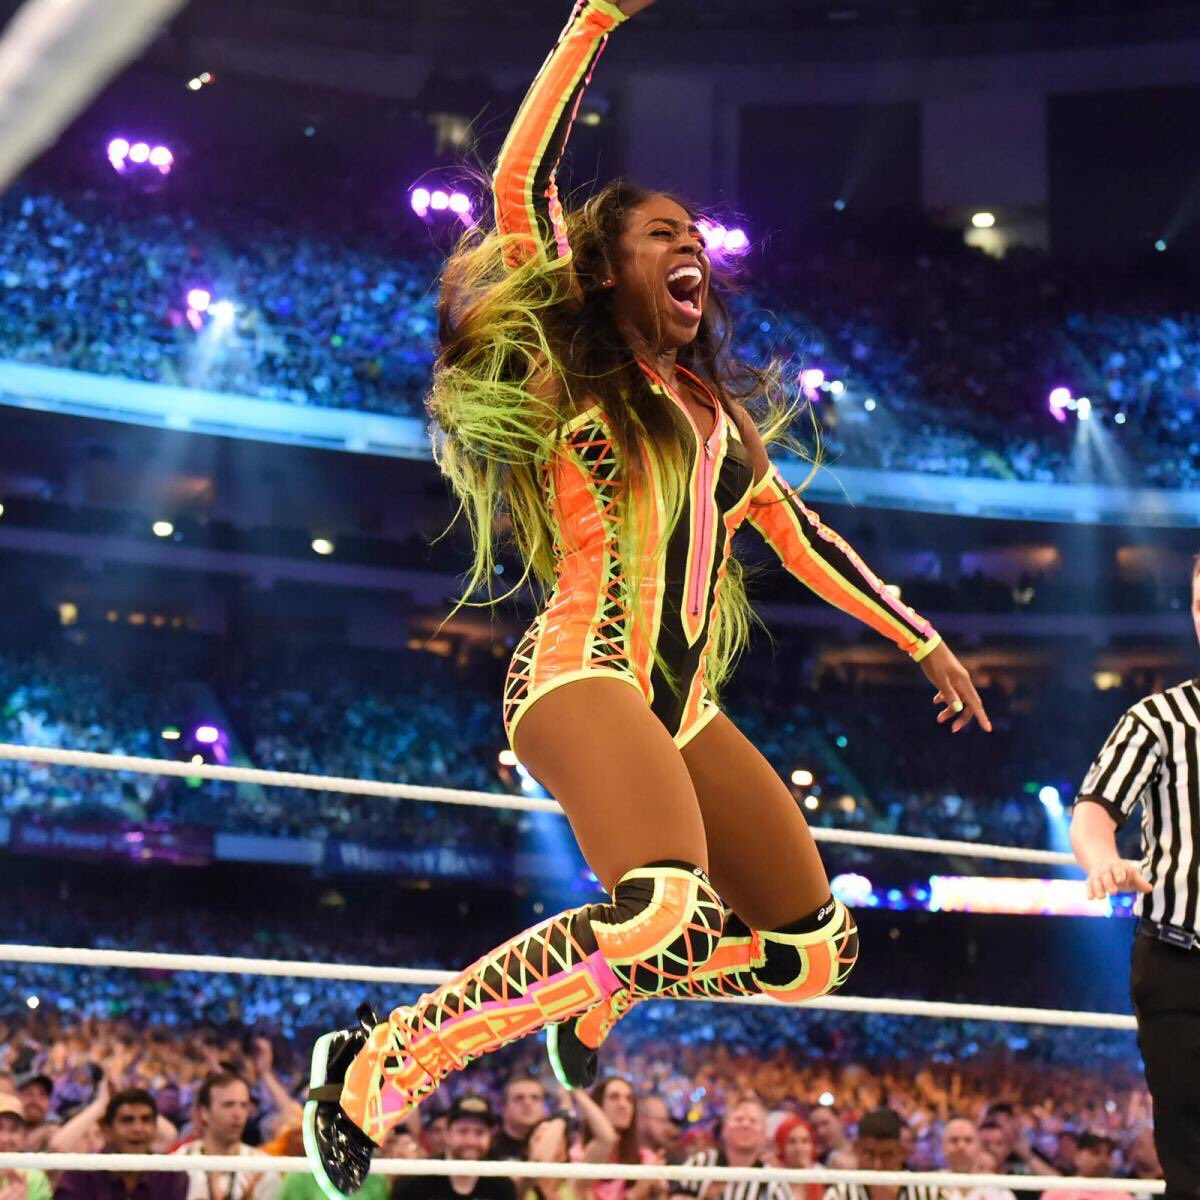 Since her debut @NaomiWWE has been a stand out. An entertainer and a phenomenal athlete, she exudes a GLOW.  Congratulations on winning the FIRST EVER @WrestleMania Womens Battle Royal.